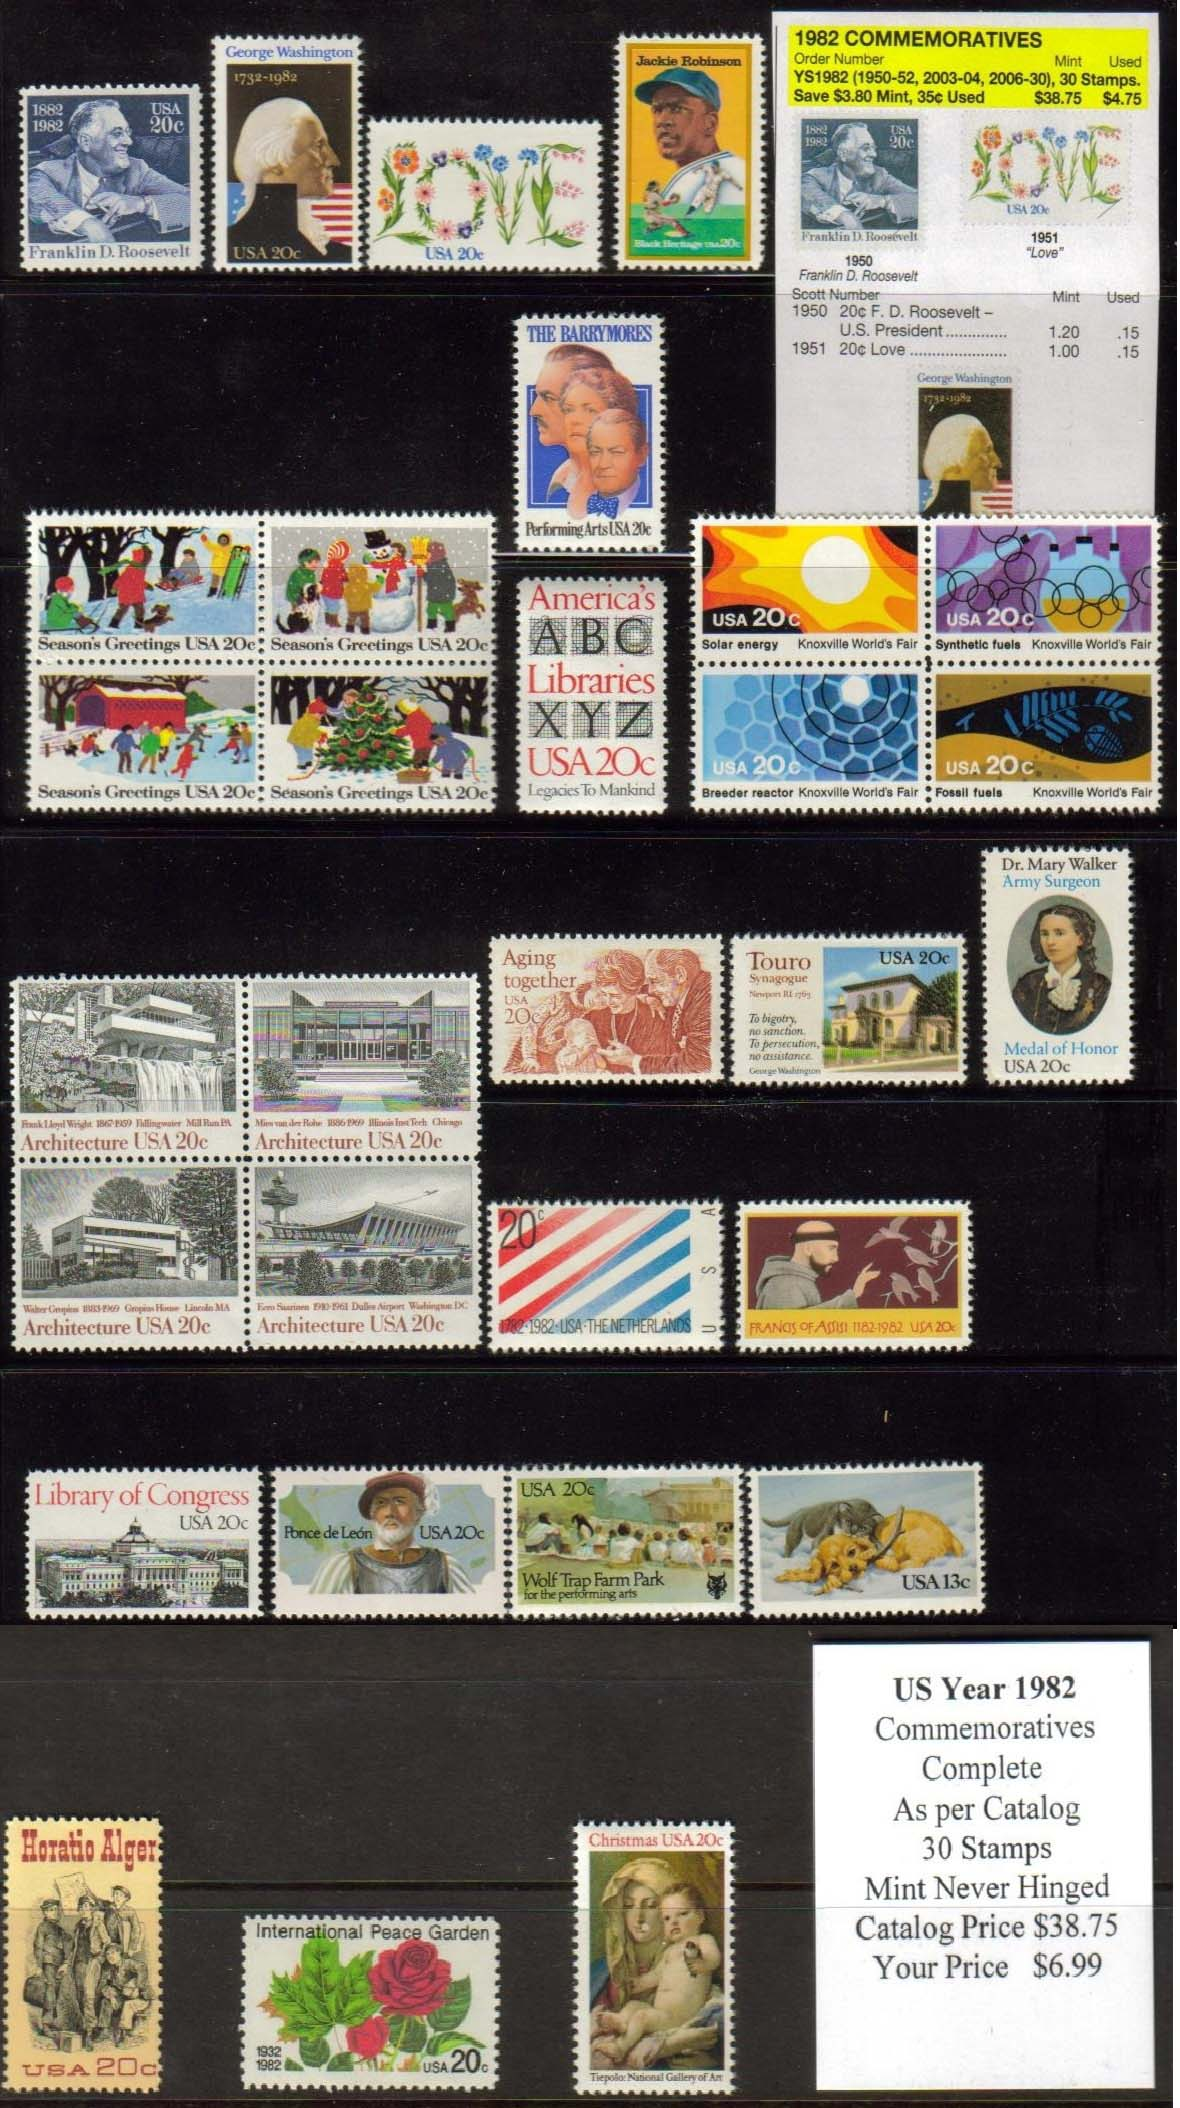 1982 COMMEMORATIVES, 30 STAMPS